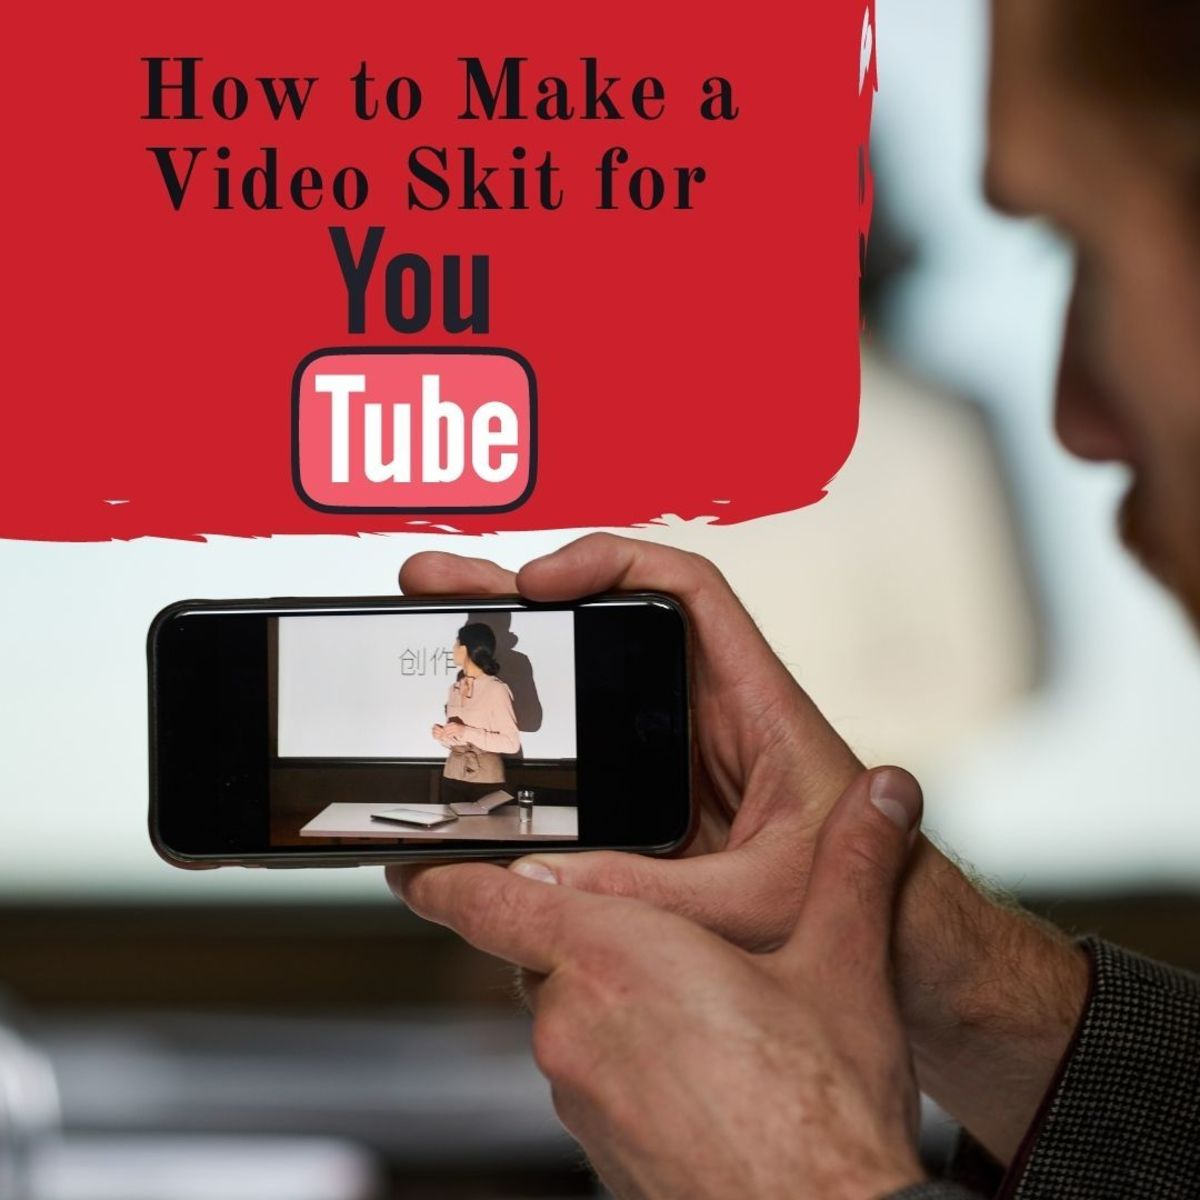 Learn how to make a video skit for YouTube